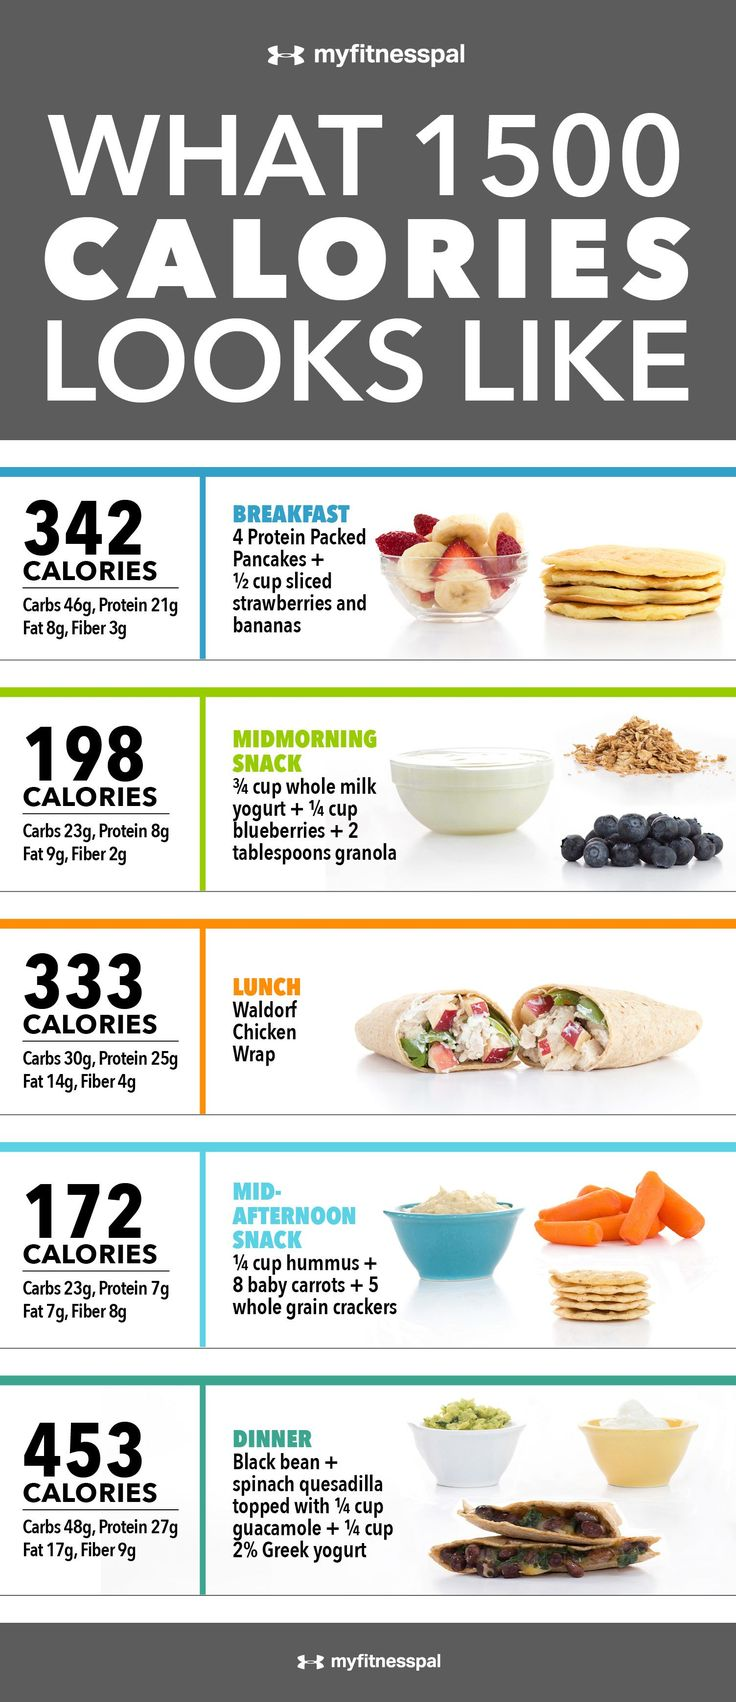 Trying to clean up your diet and cut calories? A budget of 1,500 calories a day …